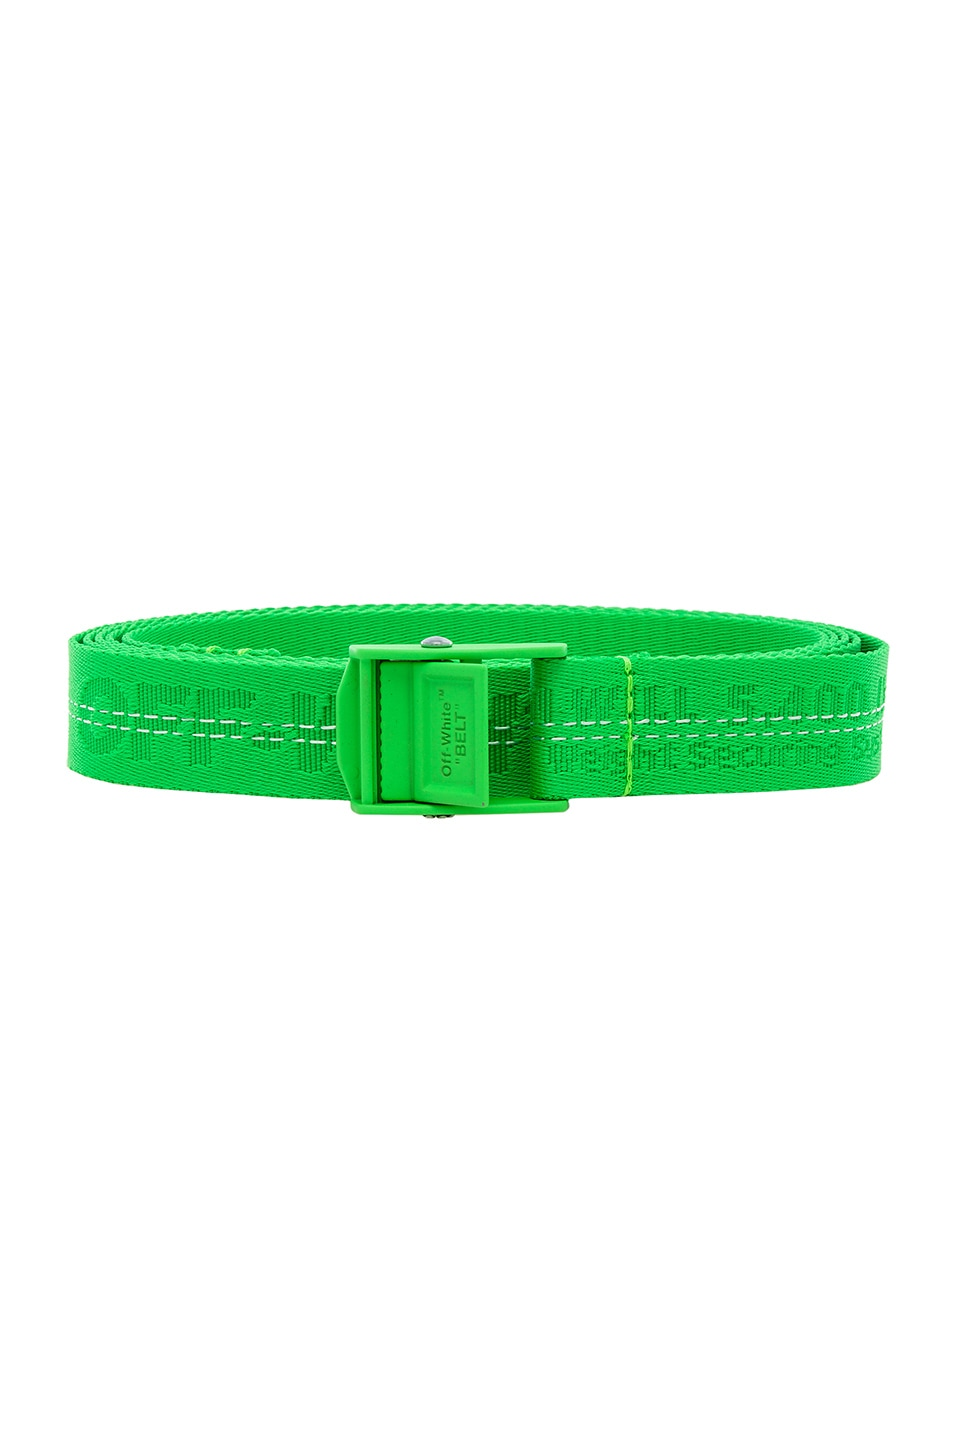 OFF-WHITE Mini Industrial Belt in Transparent & Brilliant Green